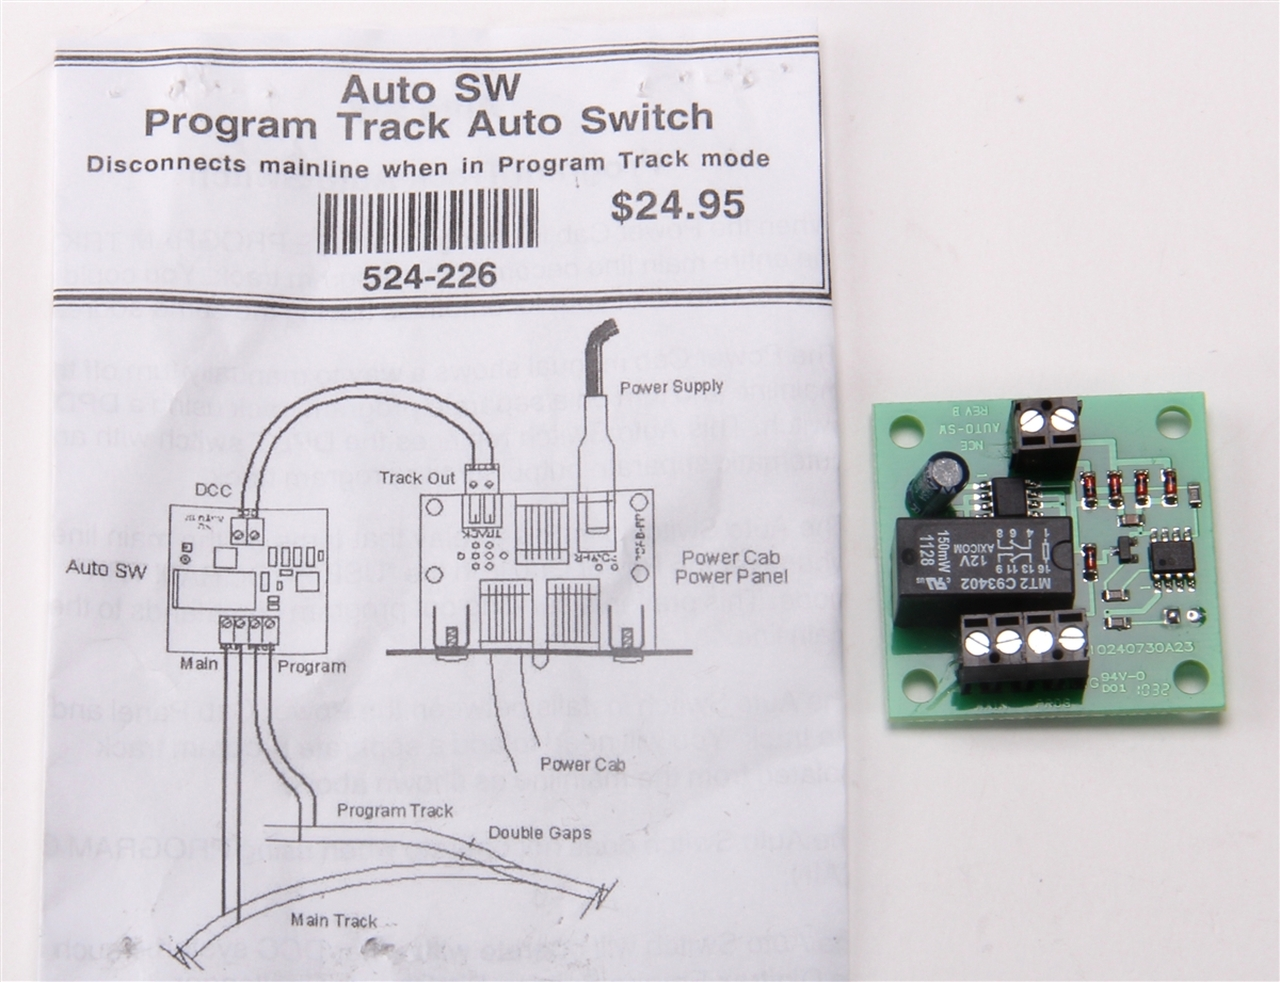 nce wiring diagram wiring library Trailer Wiring Color Code nce 524226 auto sw program track auto switch